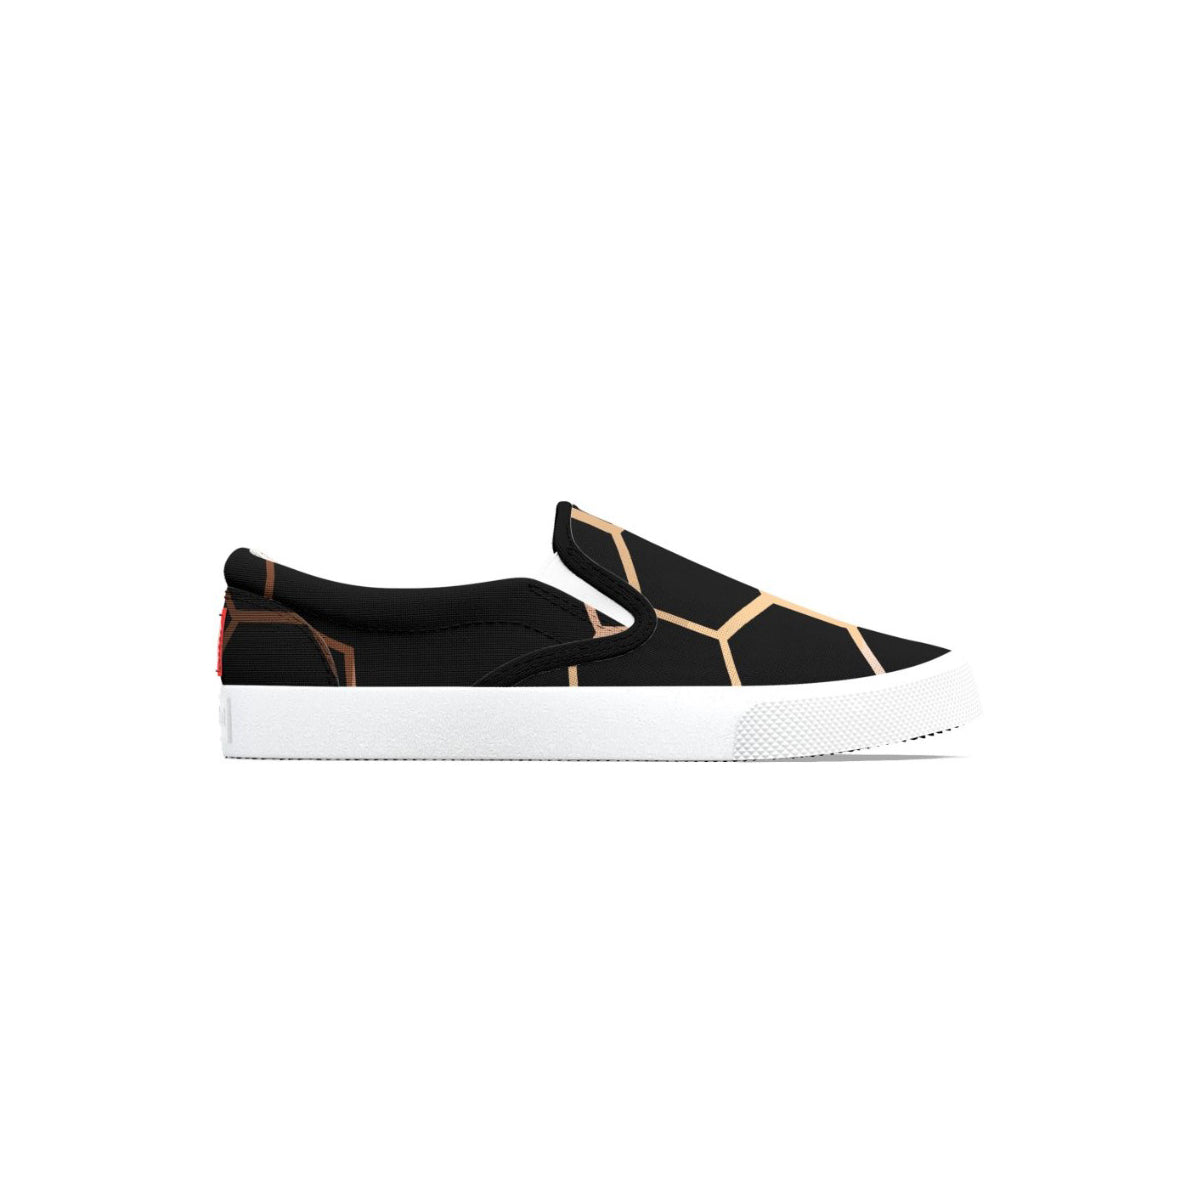 All Shades Ball Slip Ons by Squared Limited